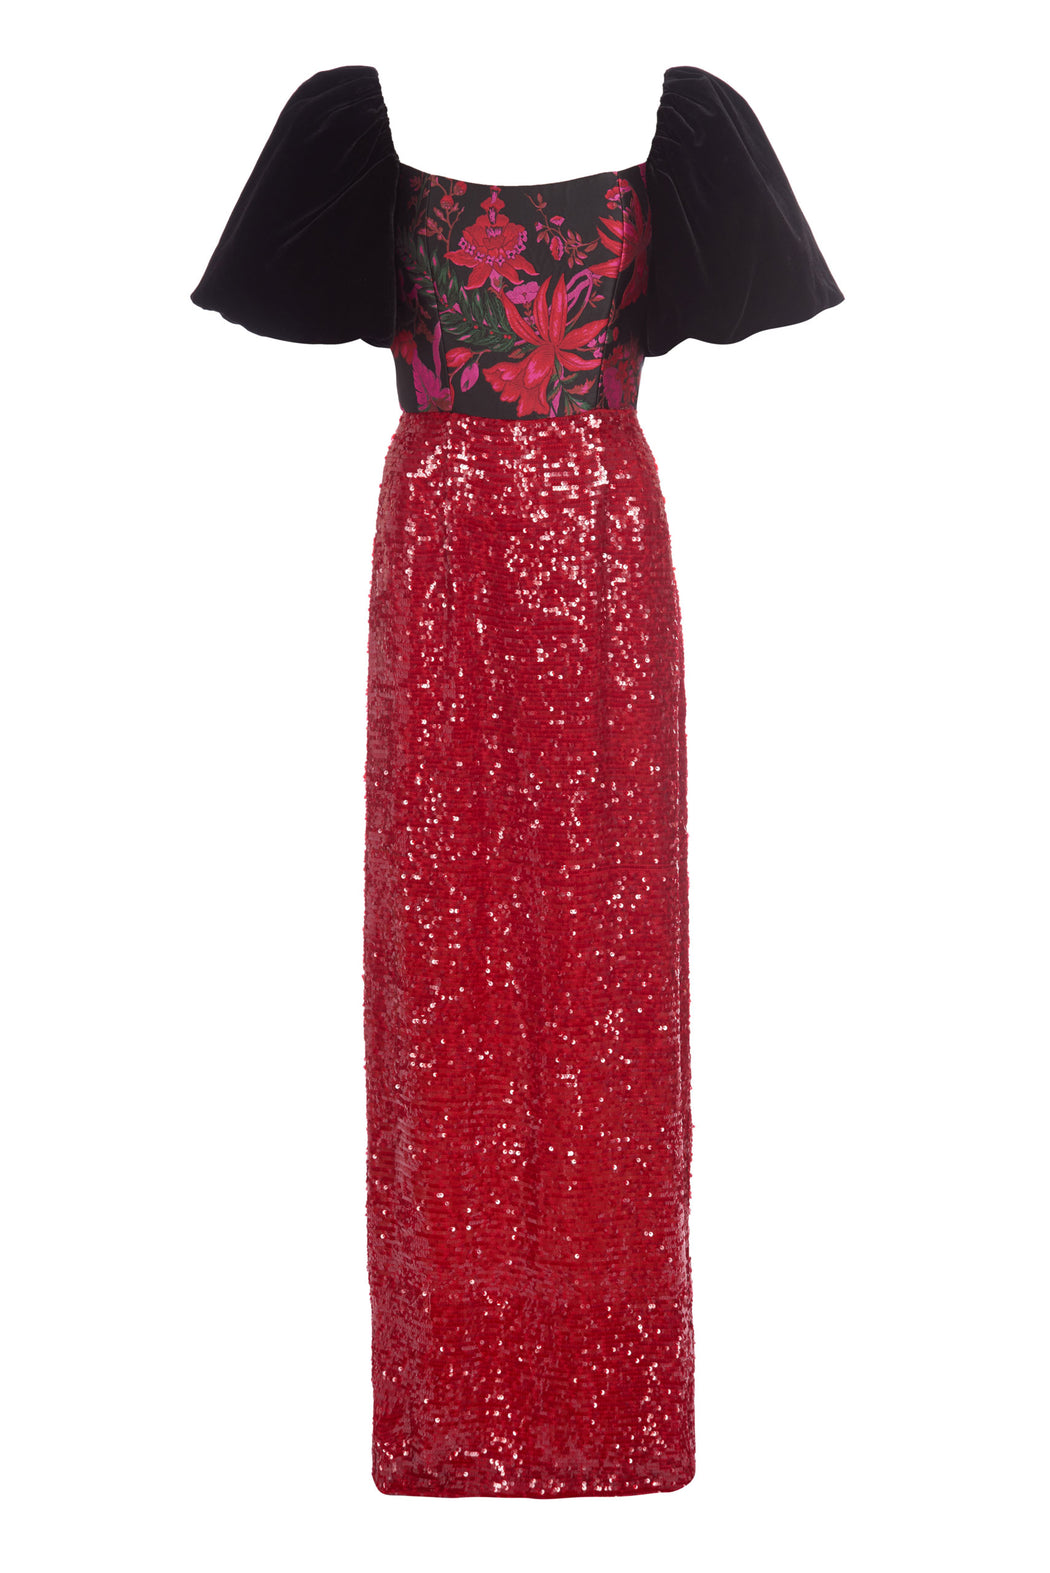 Marguerite Black Floral Brocade and Red Sequin Gown